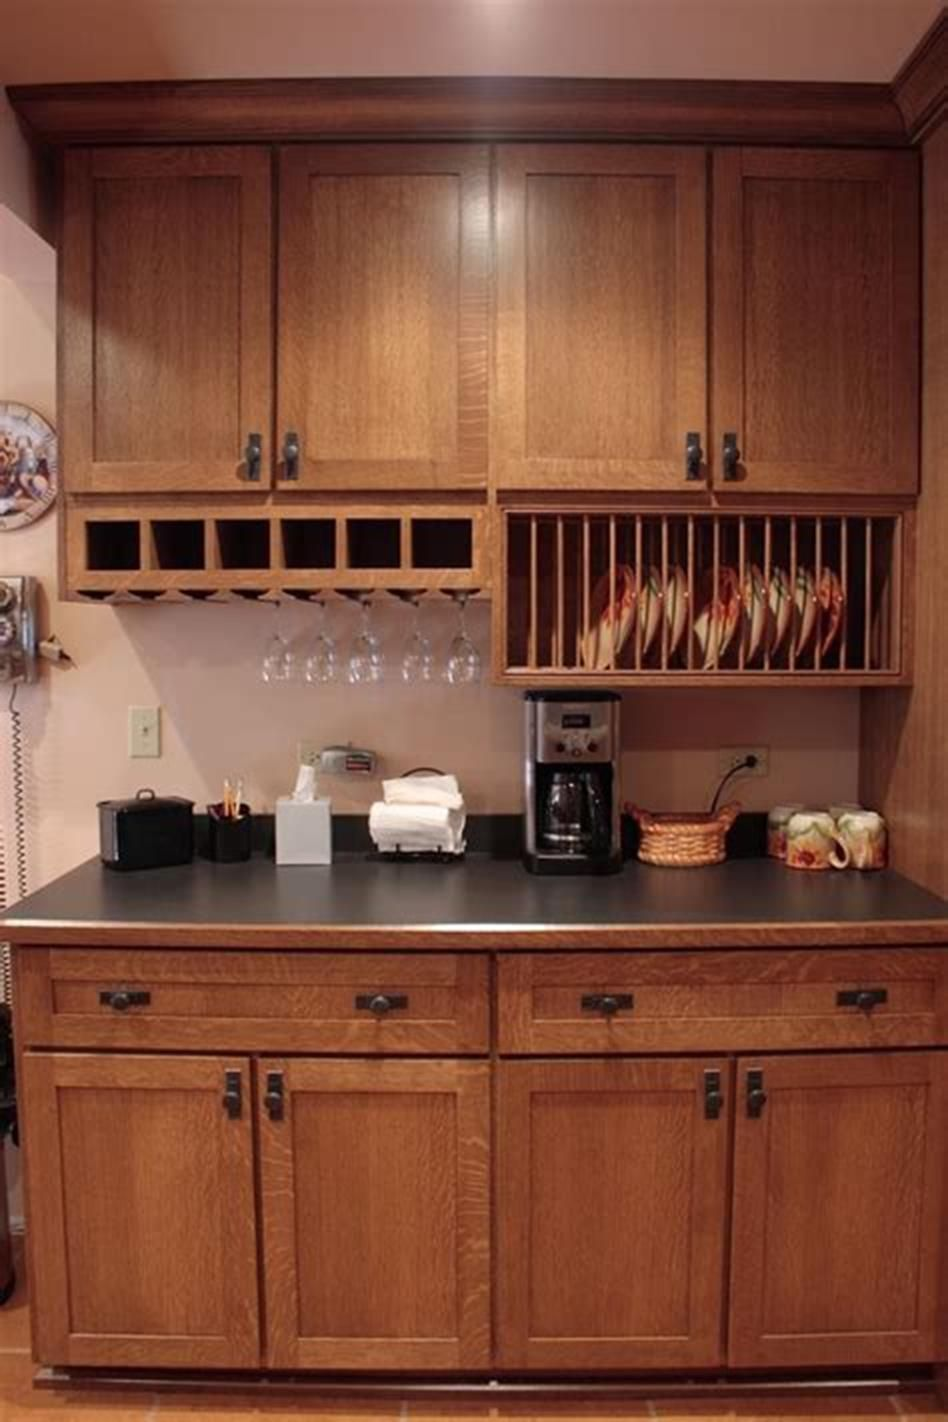 Best 30 Affordable Kitchens With Oak Cabinets Ideas In 2020 640 x 480